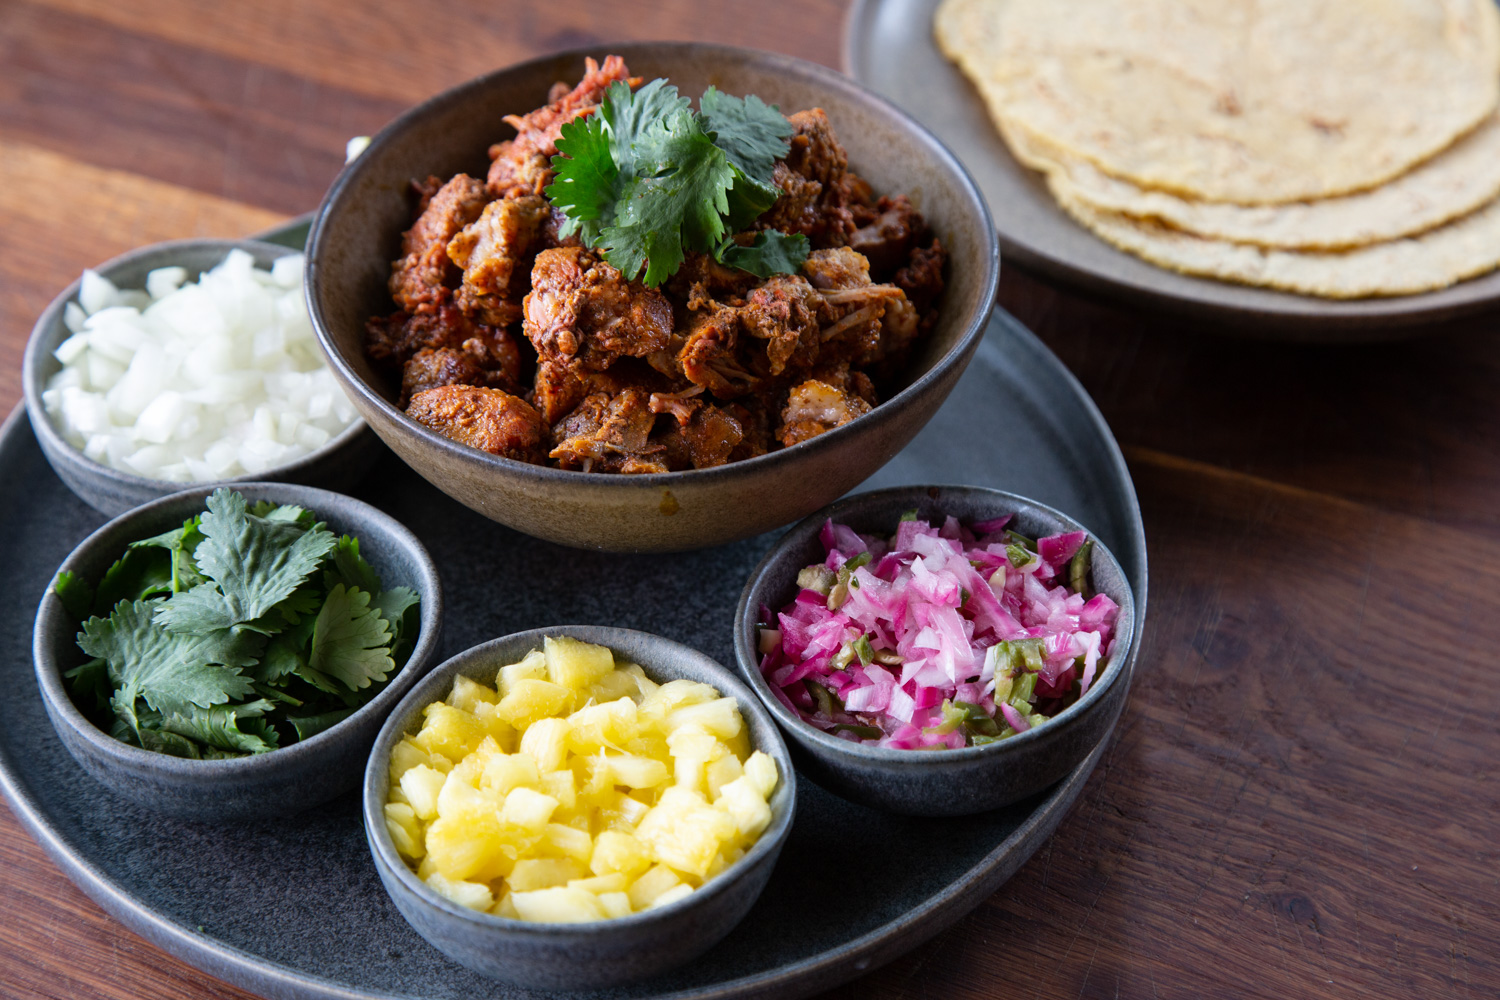 Amar Bien Pork cheek cochinita pibil